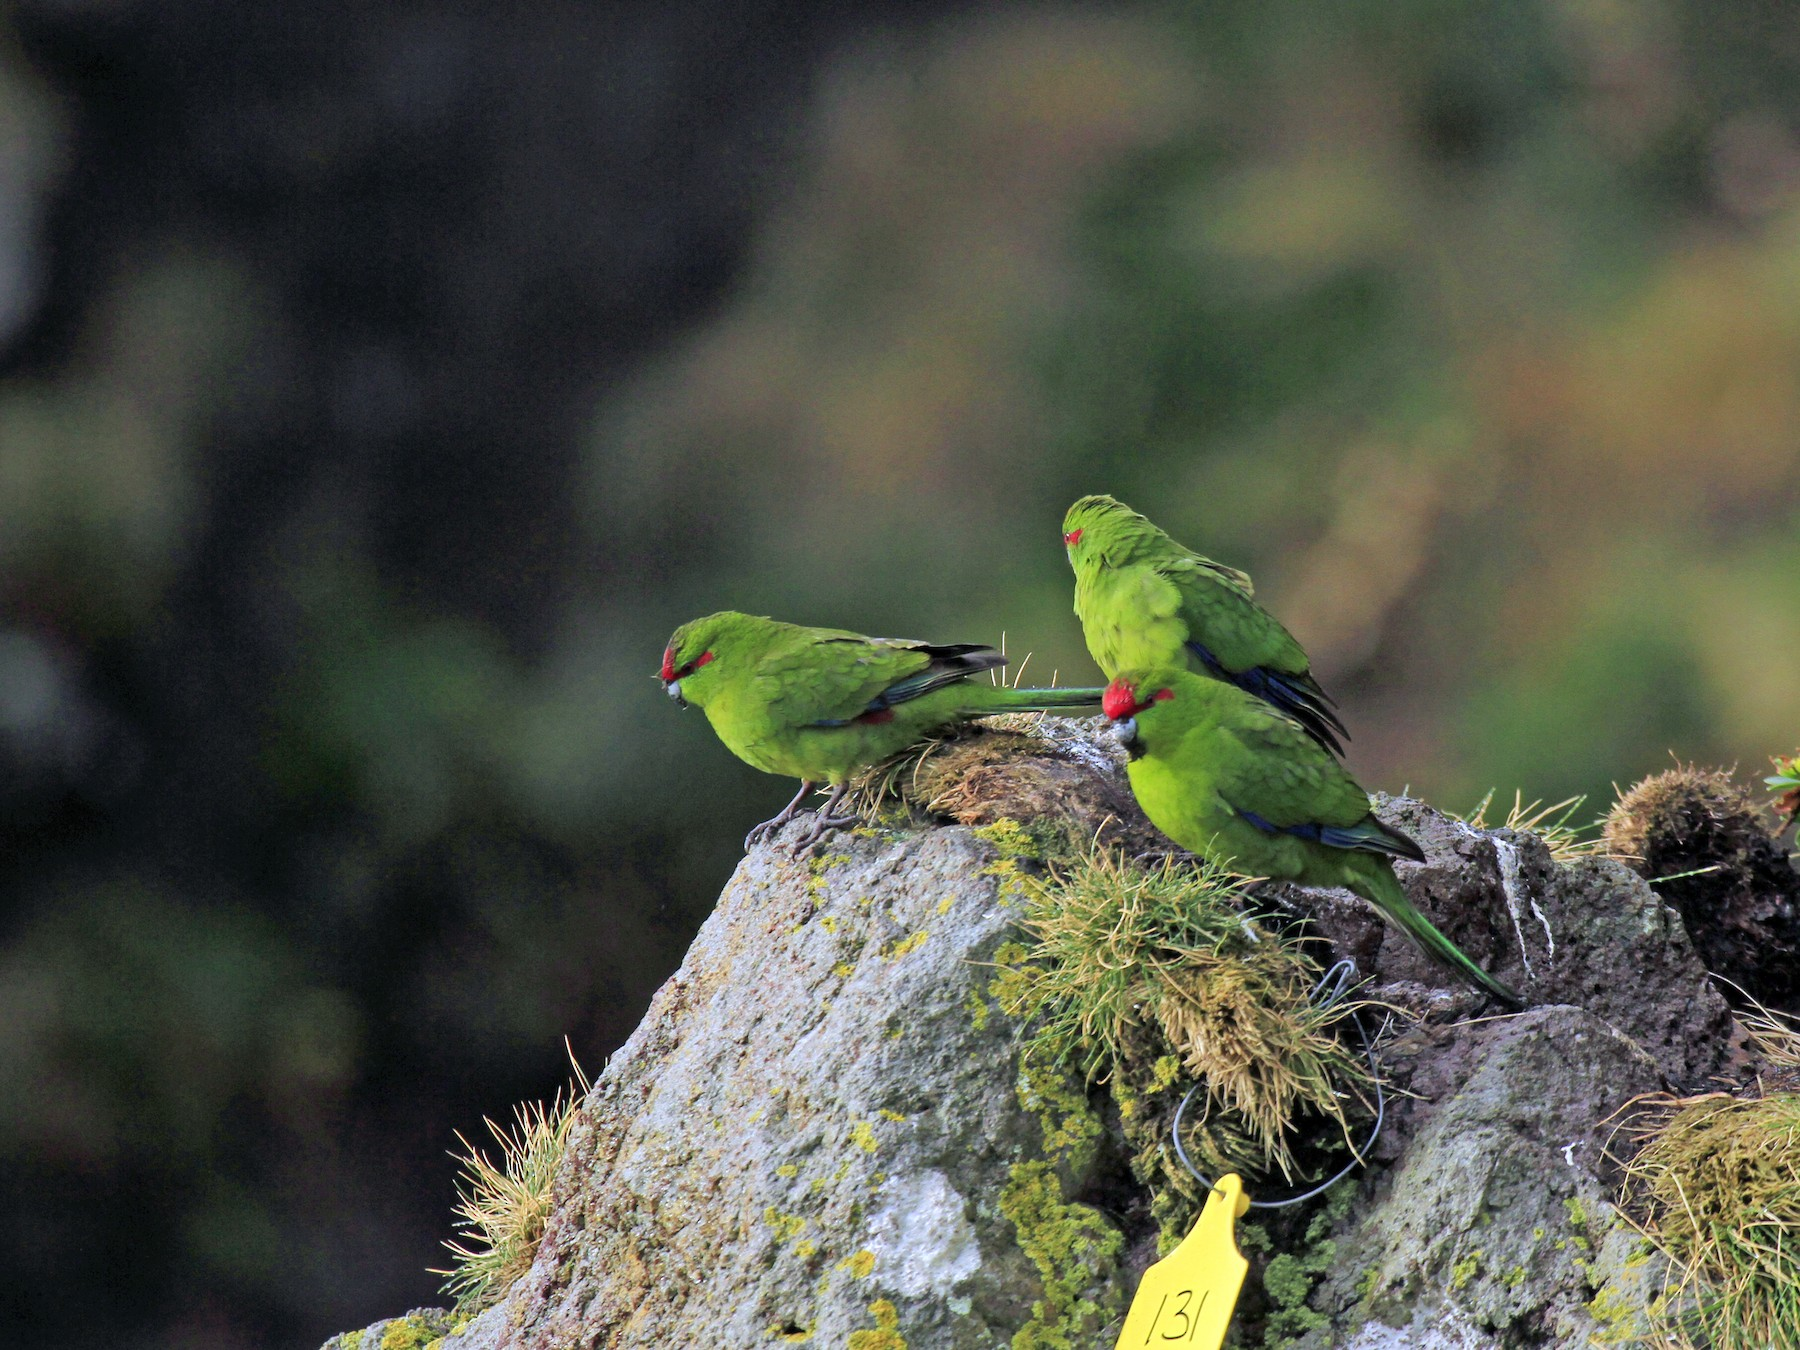 Red-crowned Parakeet - Timothee POUPART